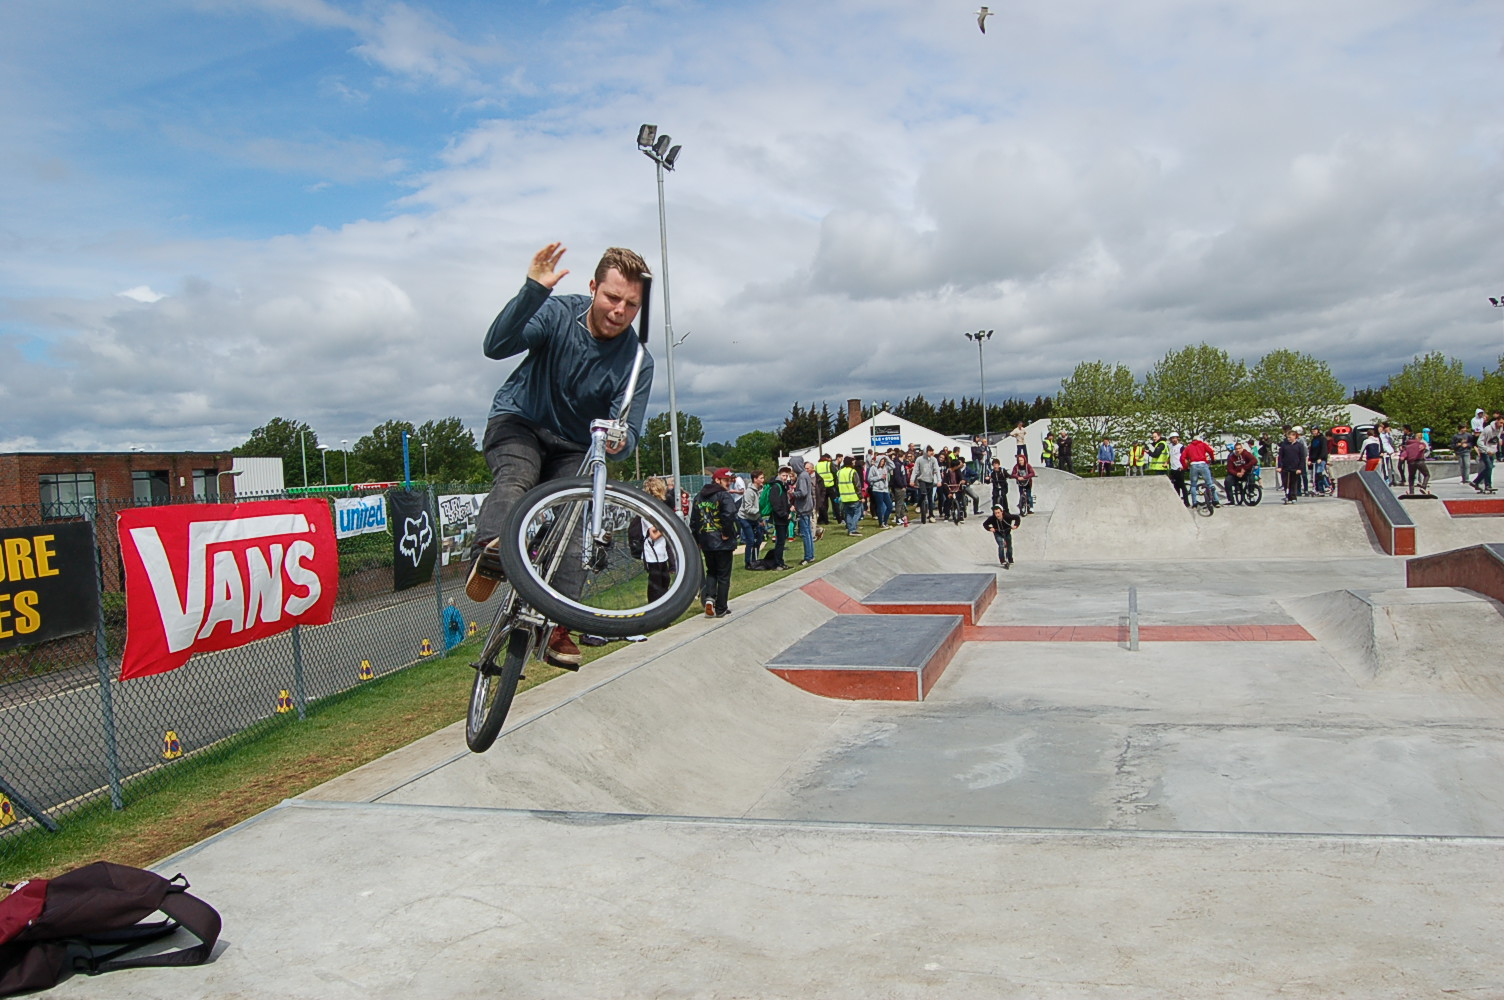 bury st edmunds skatepark opening   11 may 2014